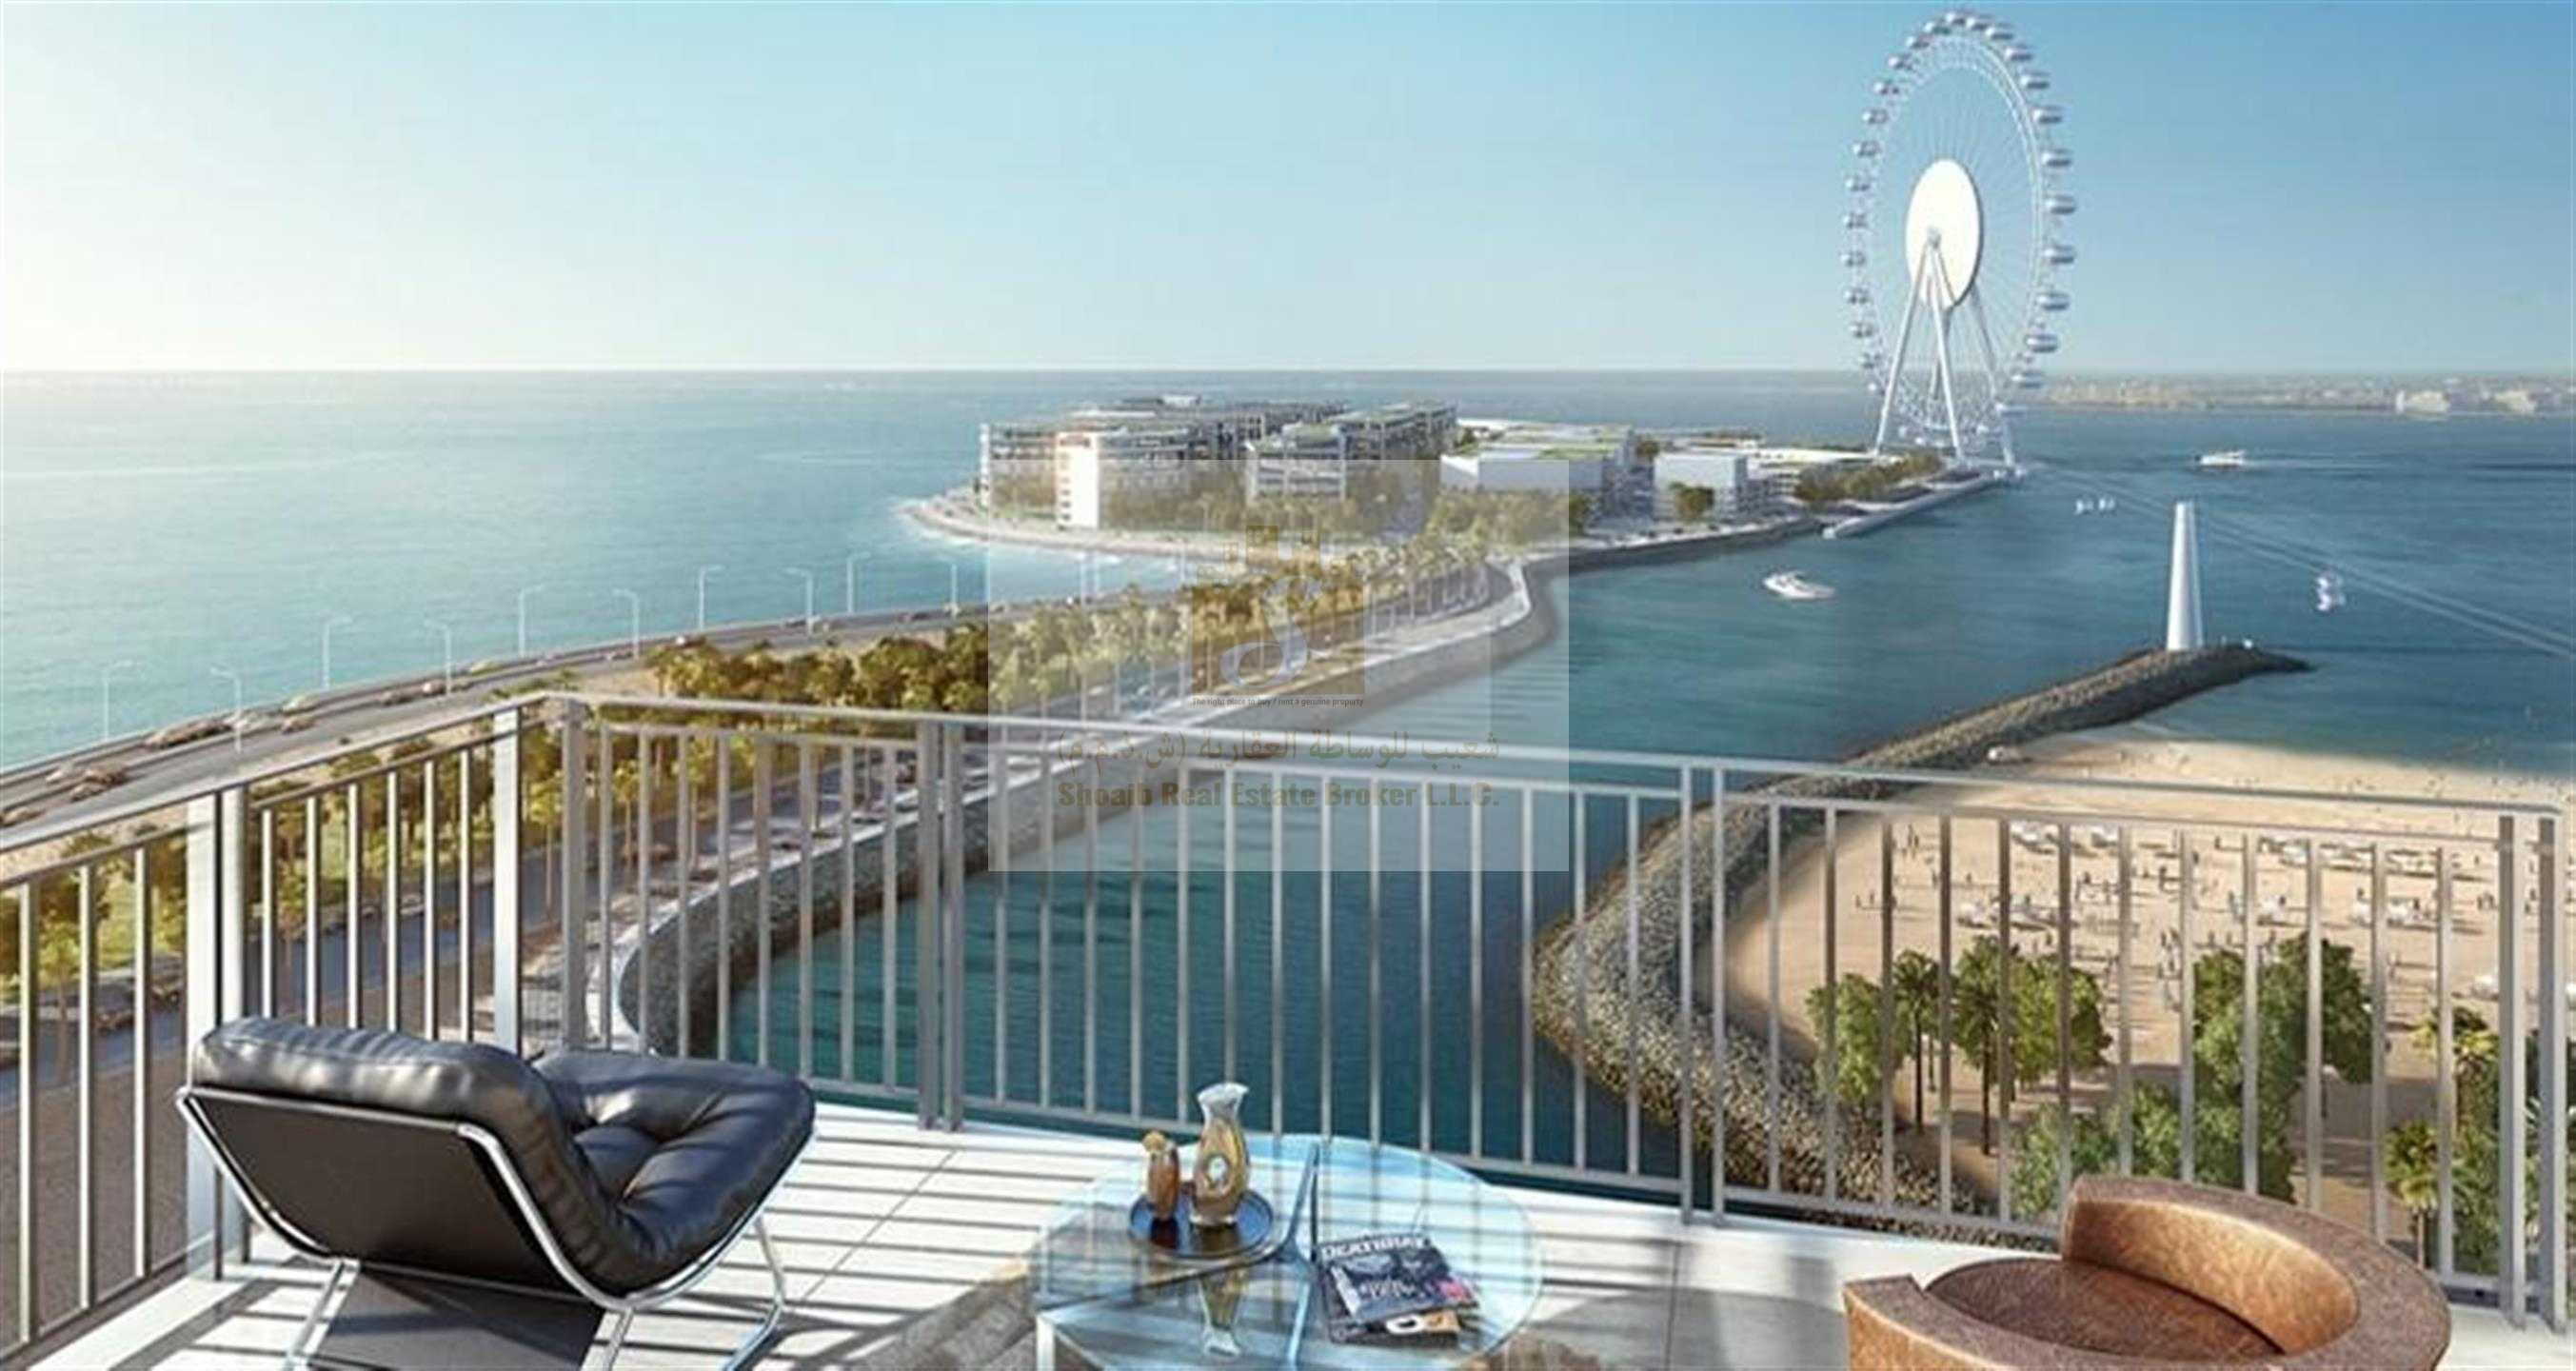 52/42 TOWER 1 | VACANT 2BR FOR SALE 02 SERIES  | PANORAMIC  VIEW OF THE  OCEAN DUBAI EYE